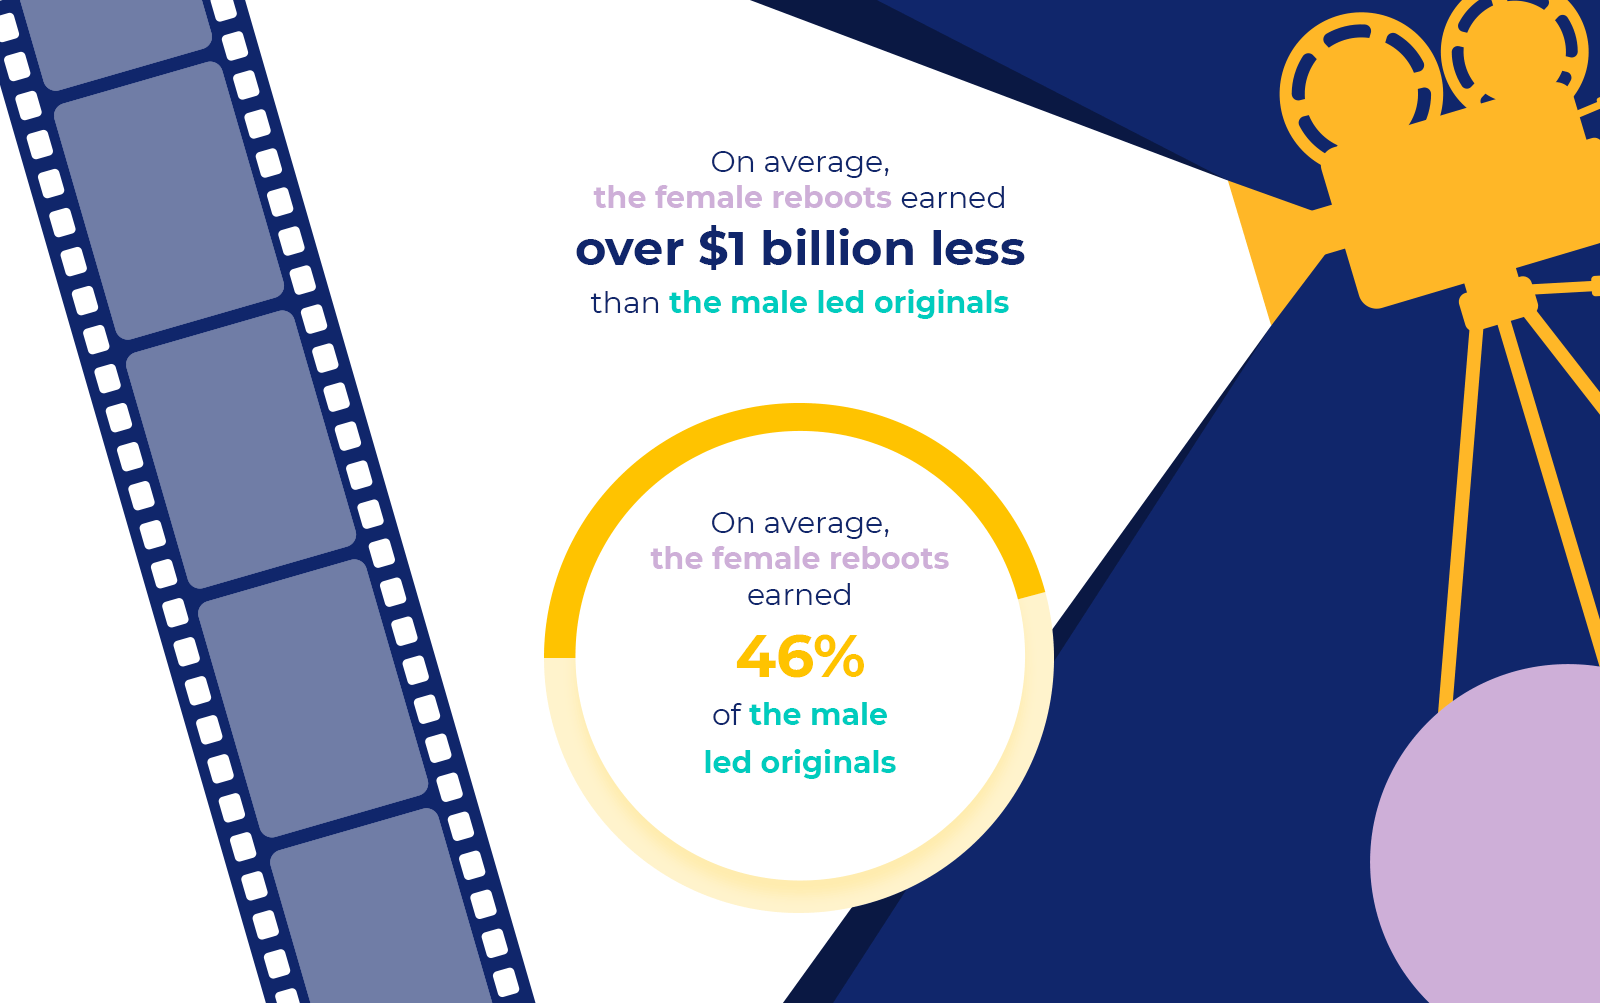 infographic - female reboots earned 46% of the male led originals